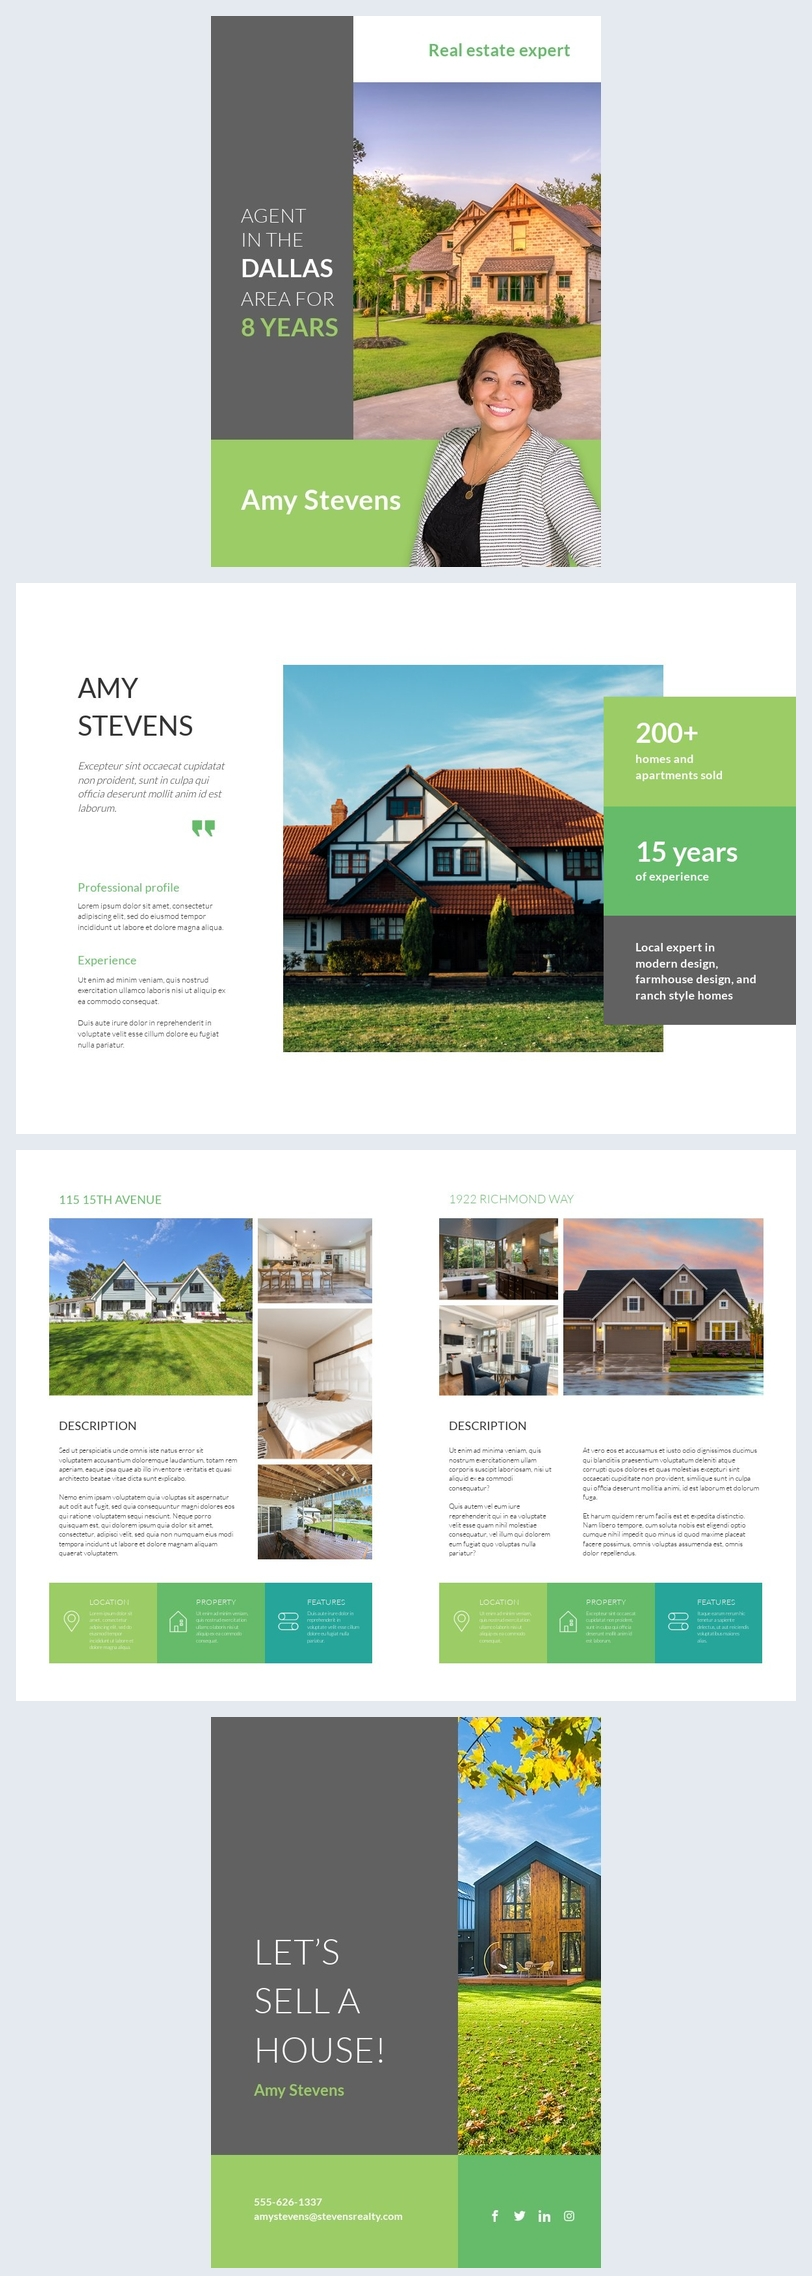 Real Estate Agent Brochure Design Example